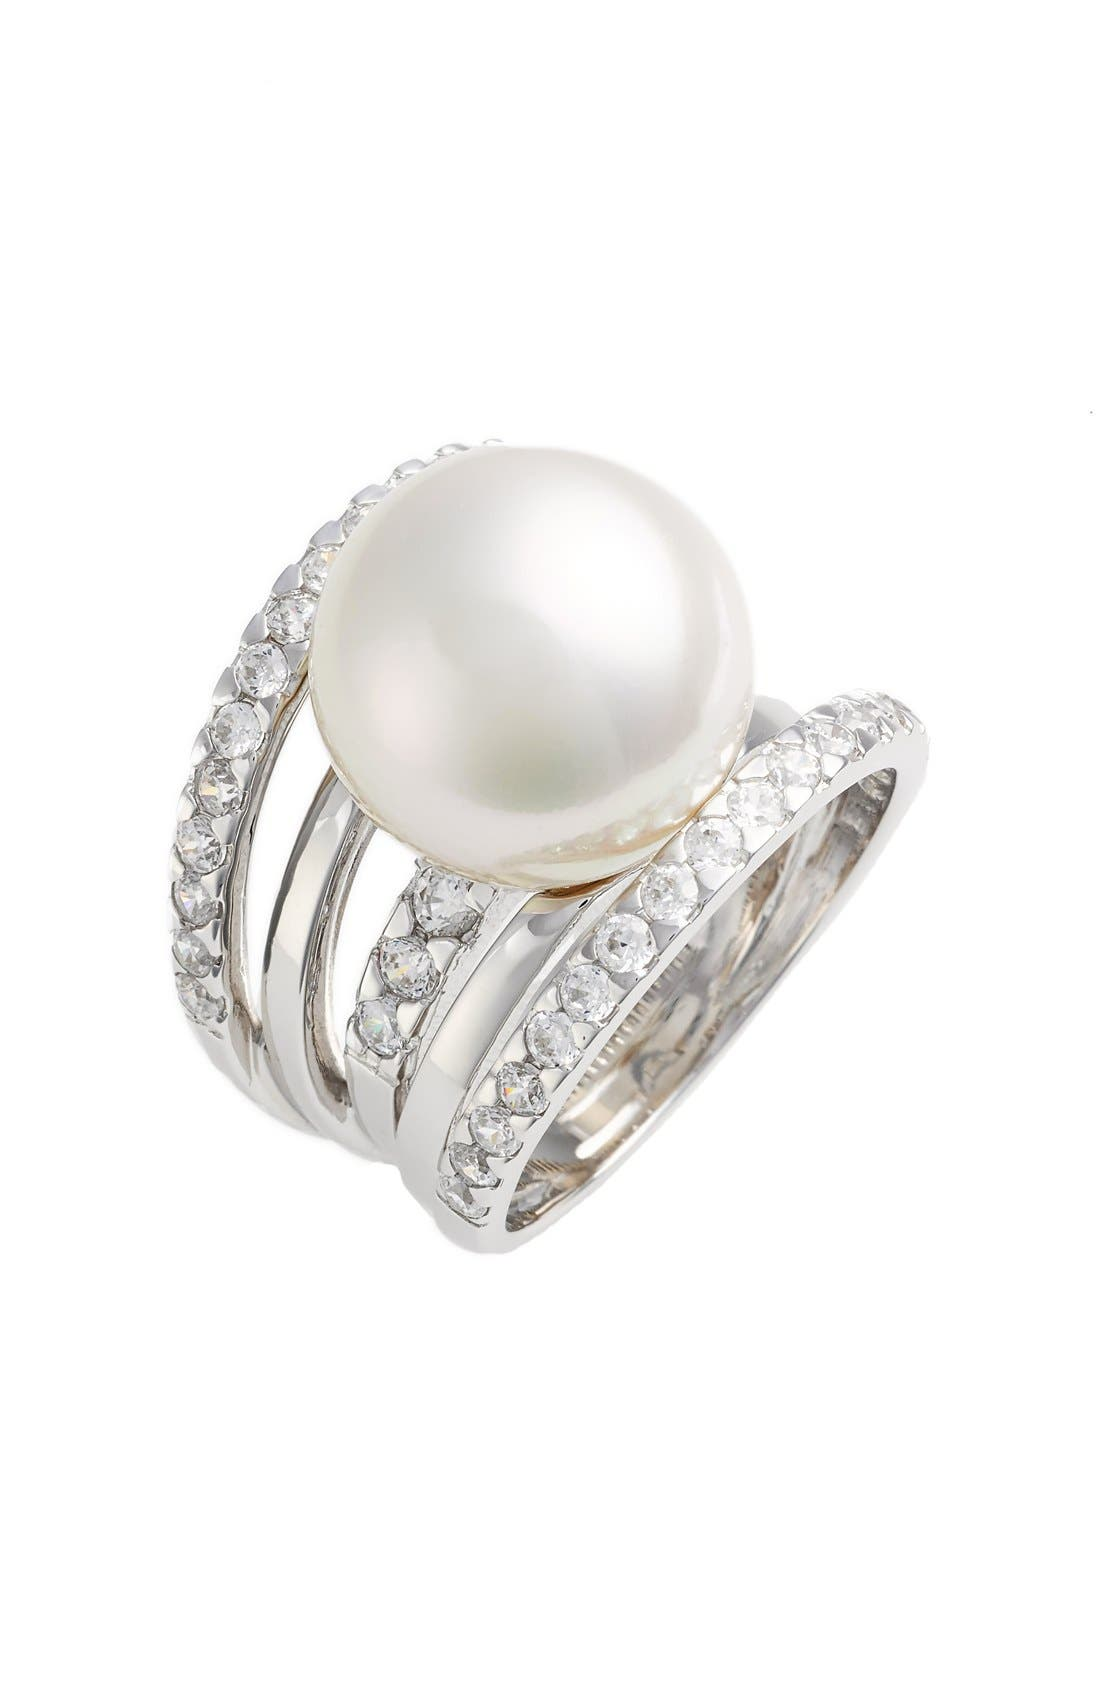 Main Image - Majorica 16mm Round Simulated Pearl Cubic Zirconia Ring